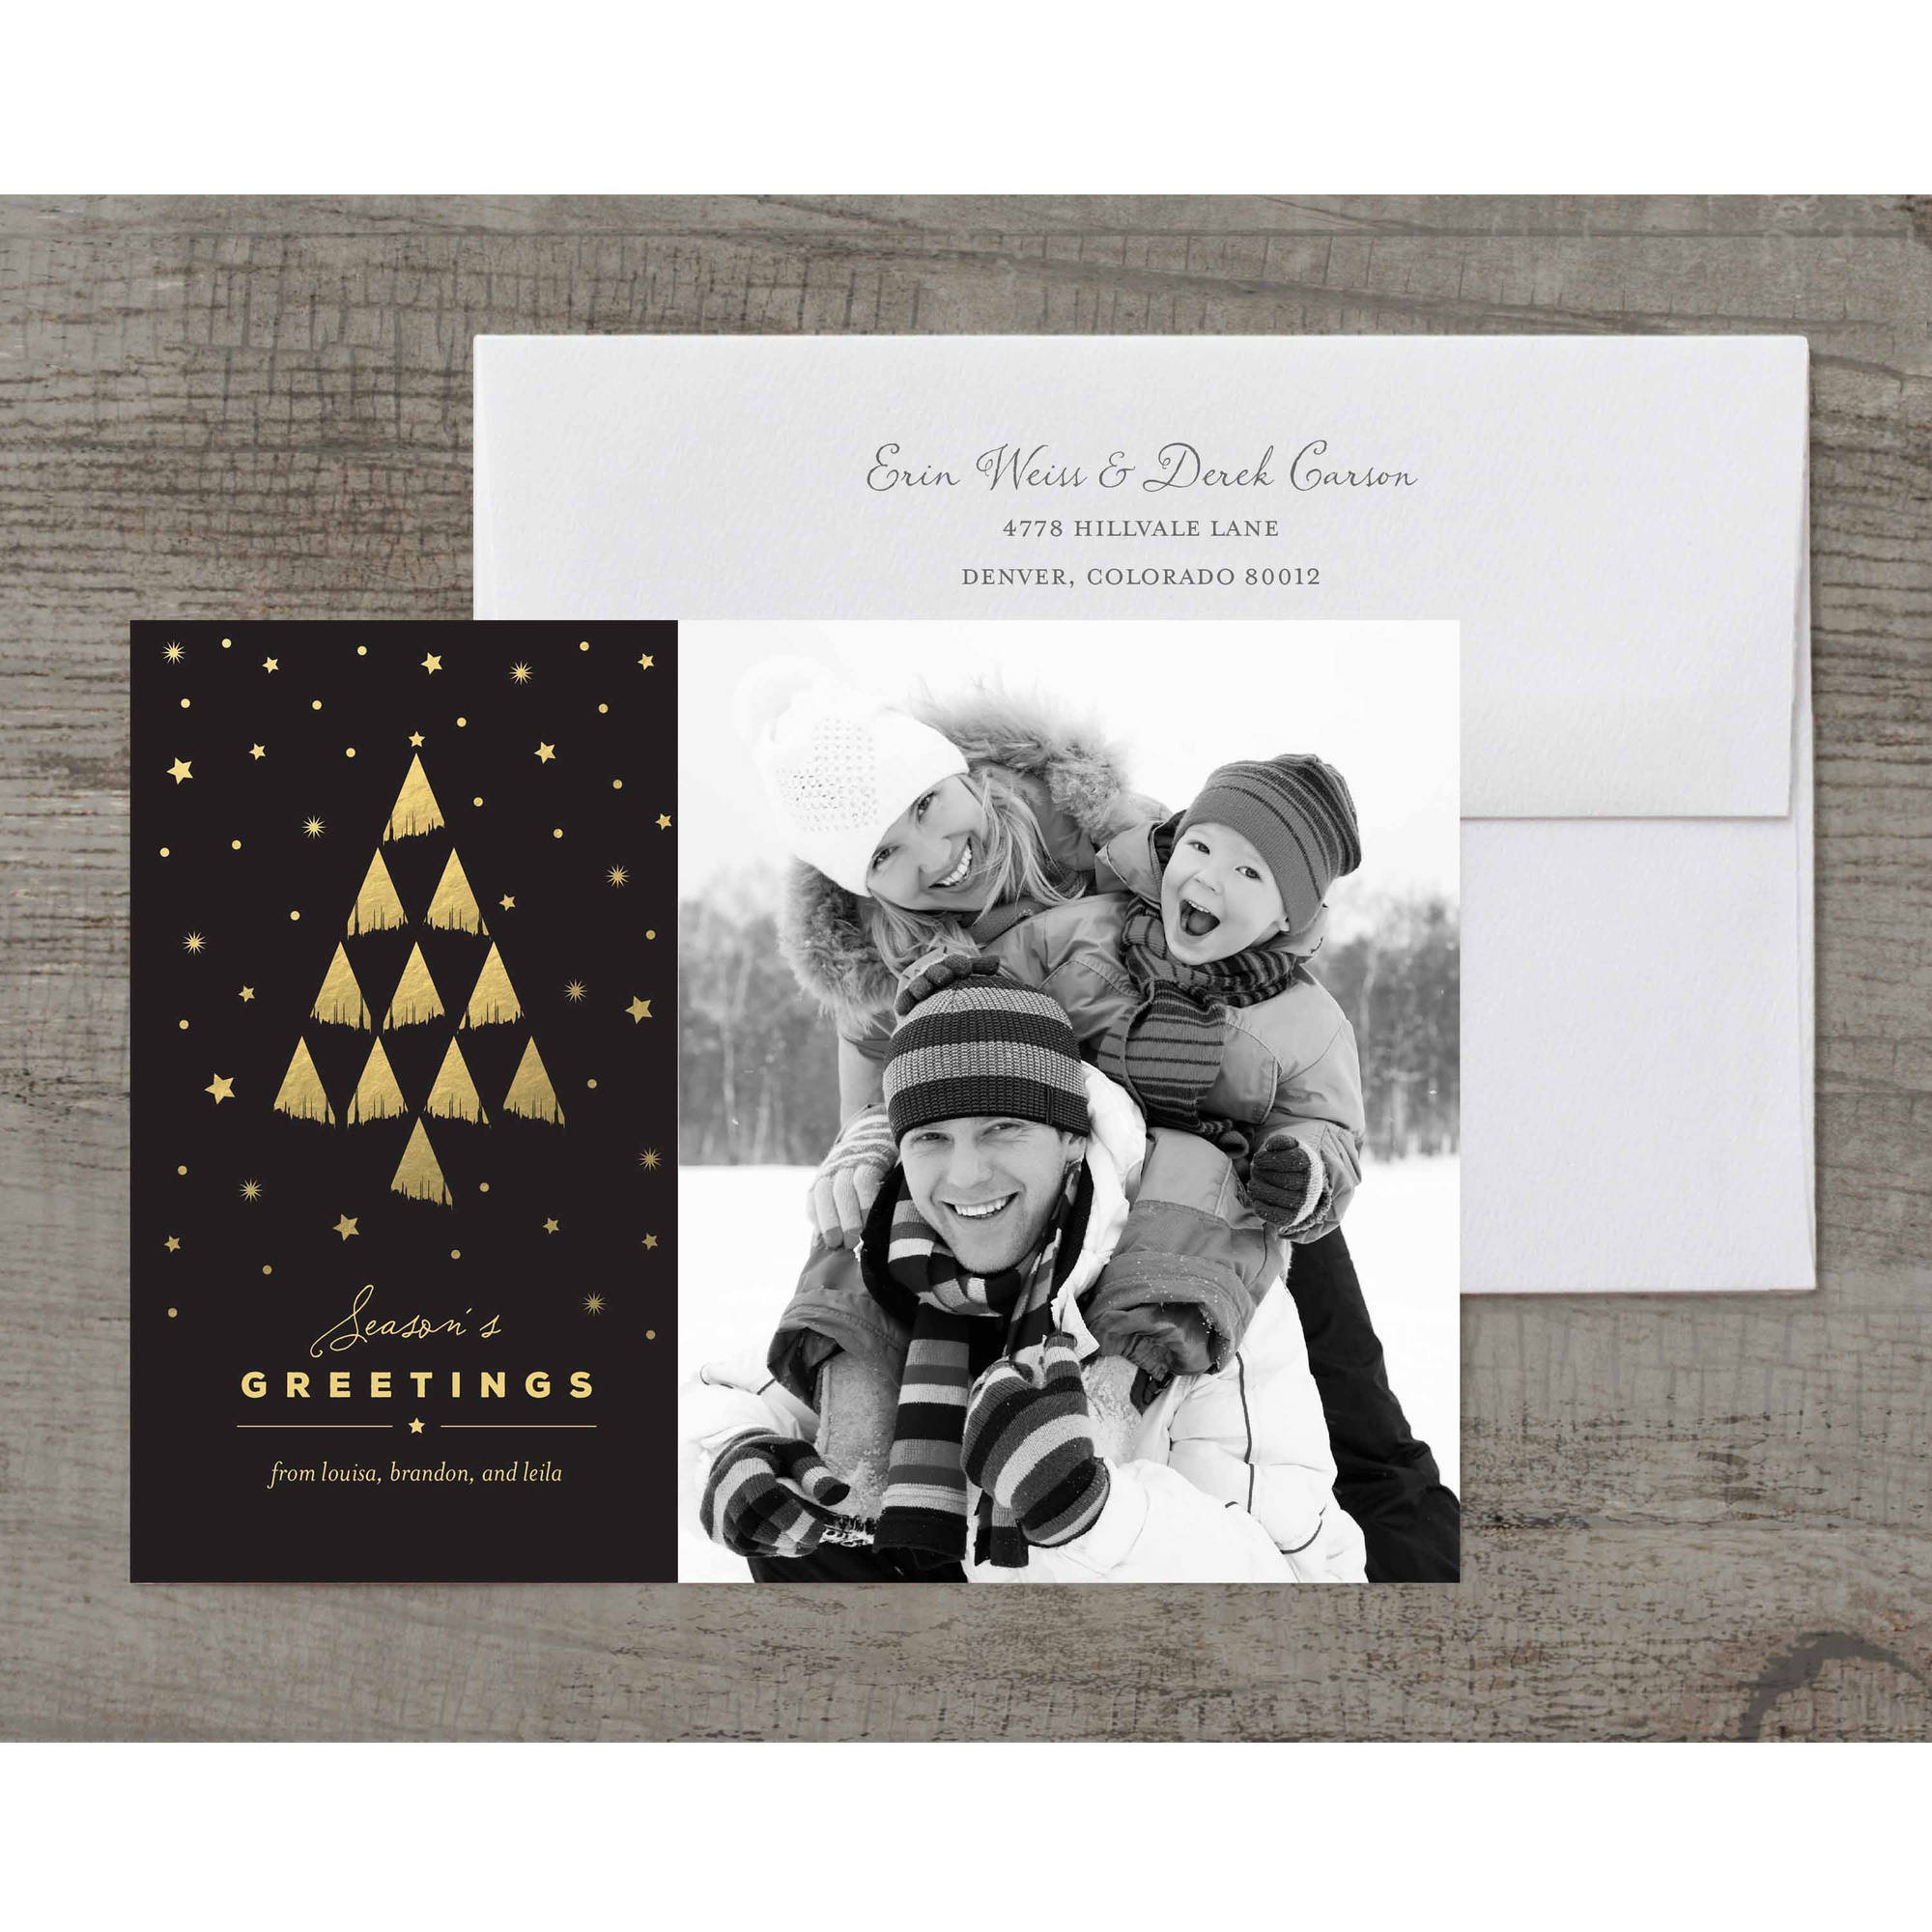 Gilded Tree Deluxe Holiday Card Walmart